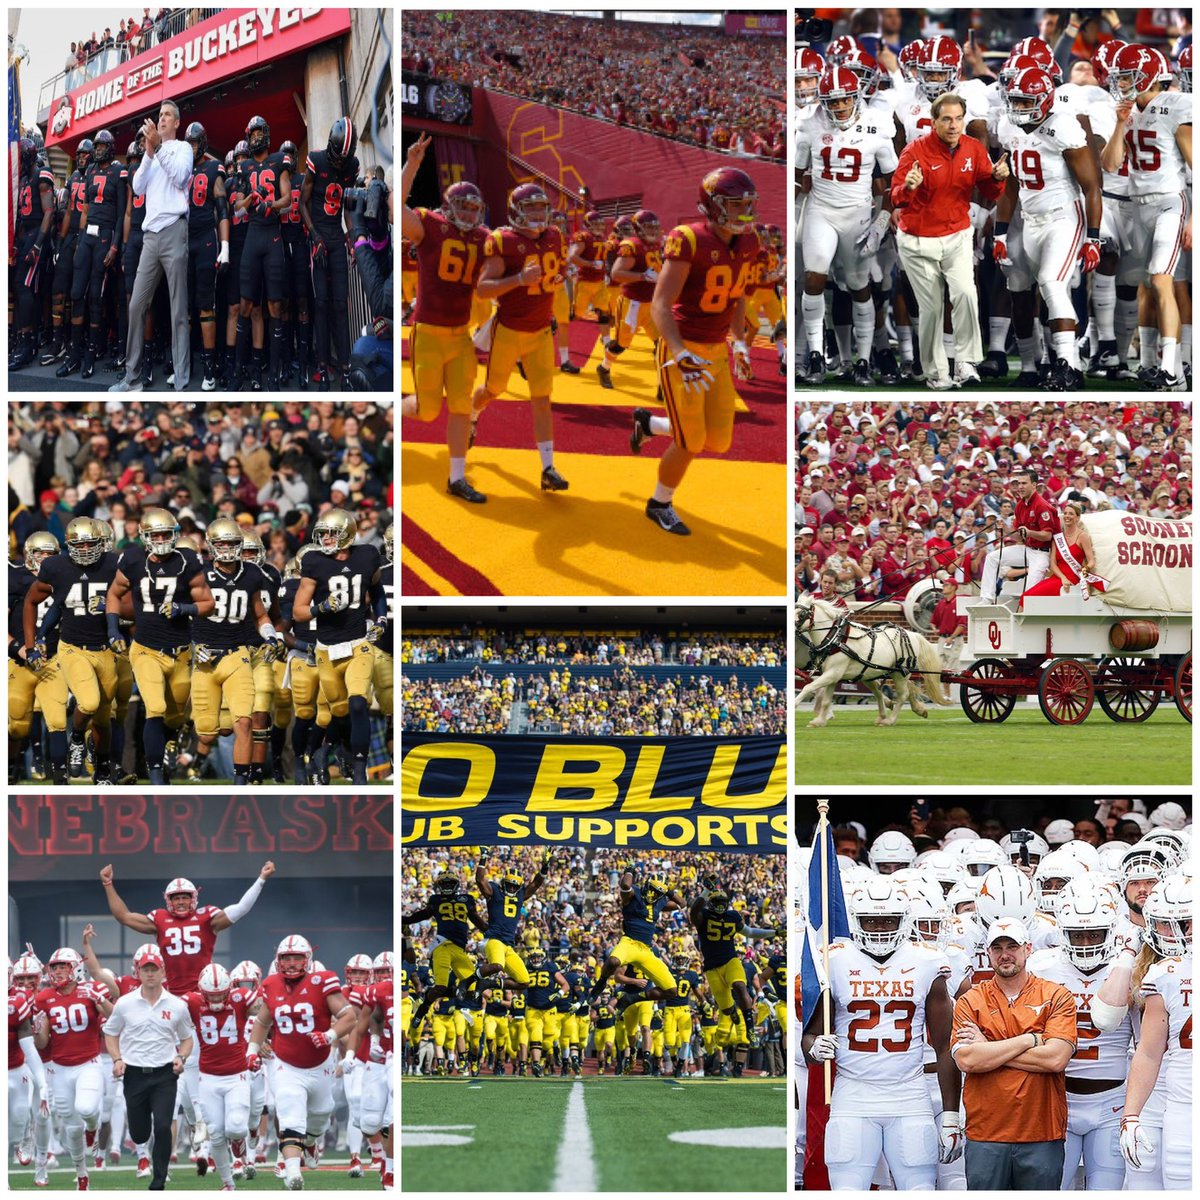 """There are 8 clear """"Blue Bloods"""" in the history of College Football:  -Ohio State -Oklahoma -Alabama -USC -Michigan -Nebraska -Notre Dame -Texas <br>http://pic.twitter.com/DCLdOSseWz"""